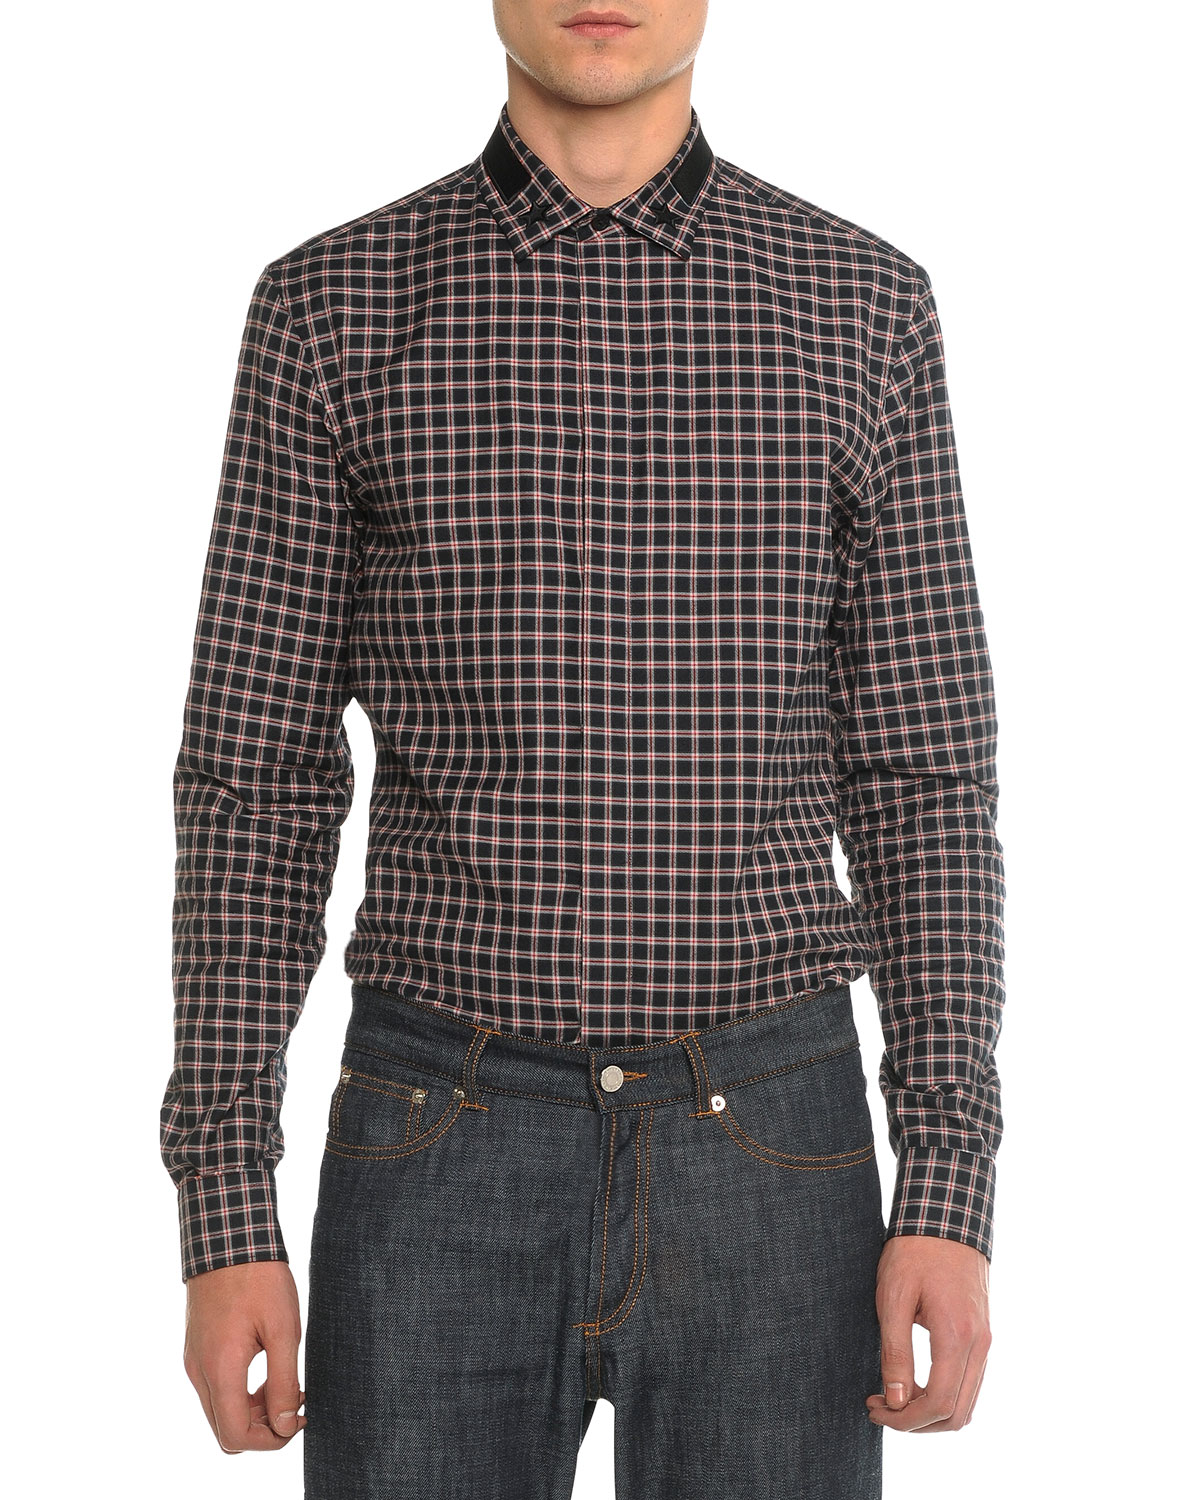 Plaid Woven Shirt with Star Collar, Black